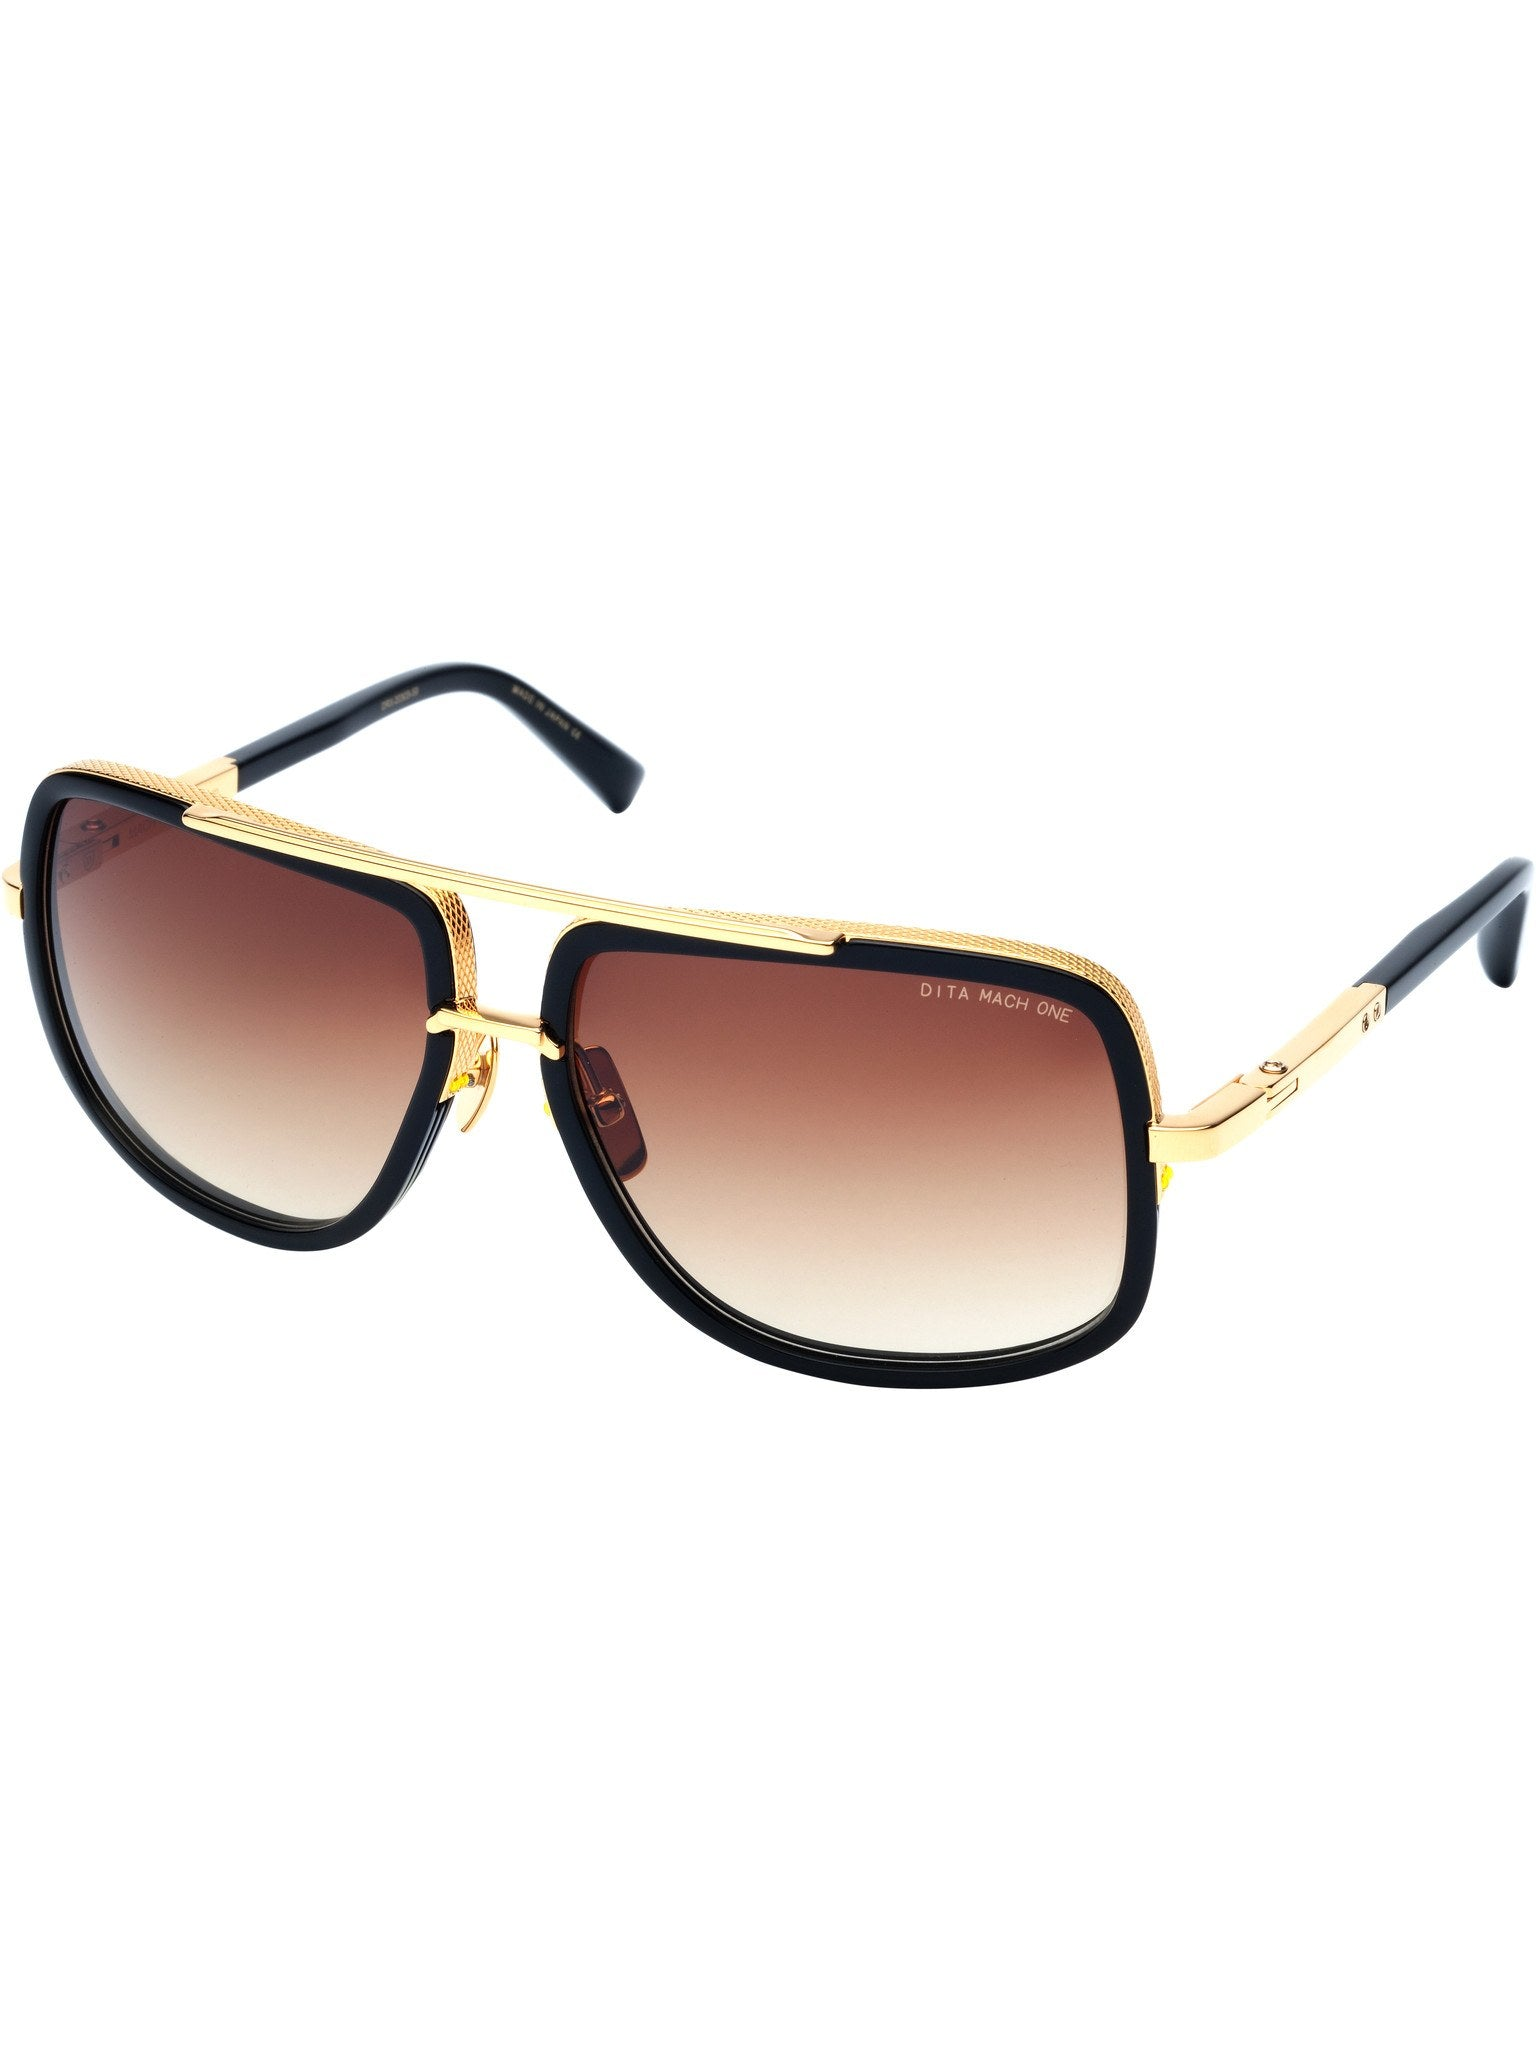 6657444f4991 Sunglasses - Dita Mach-One DRX 2030B Sunglasses